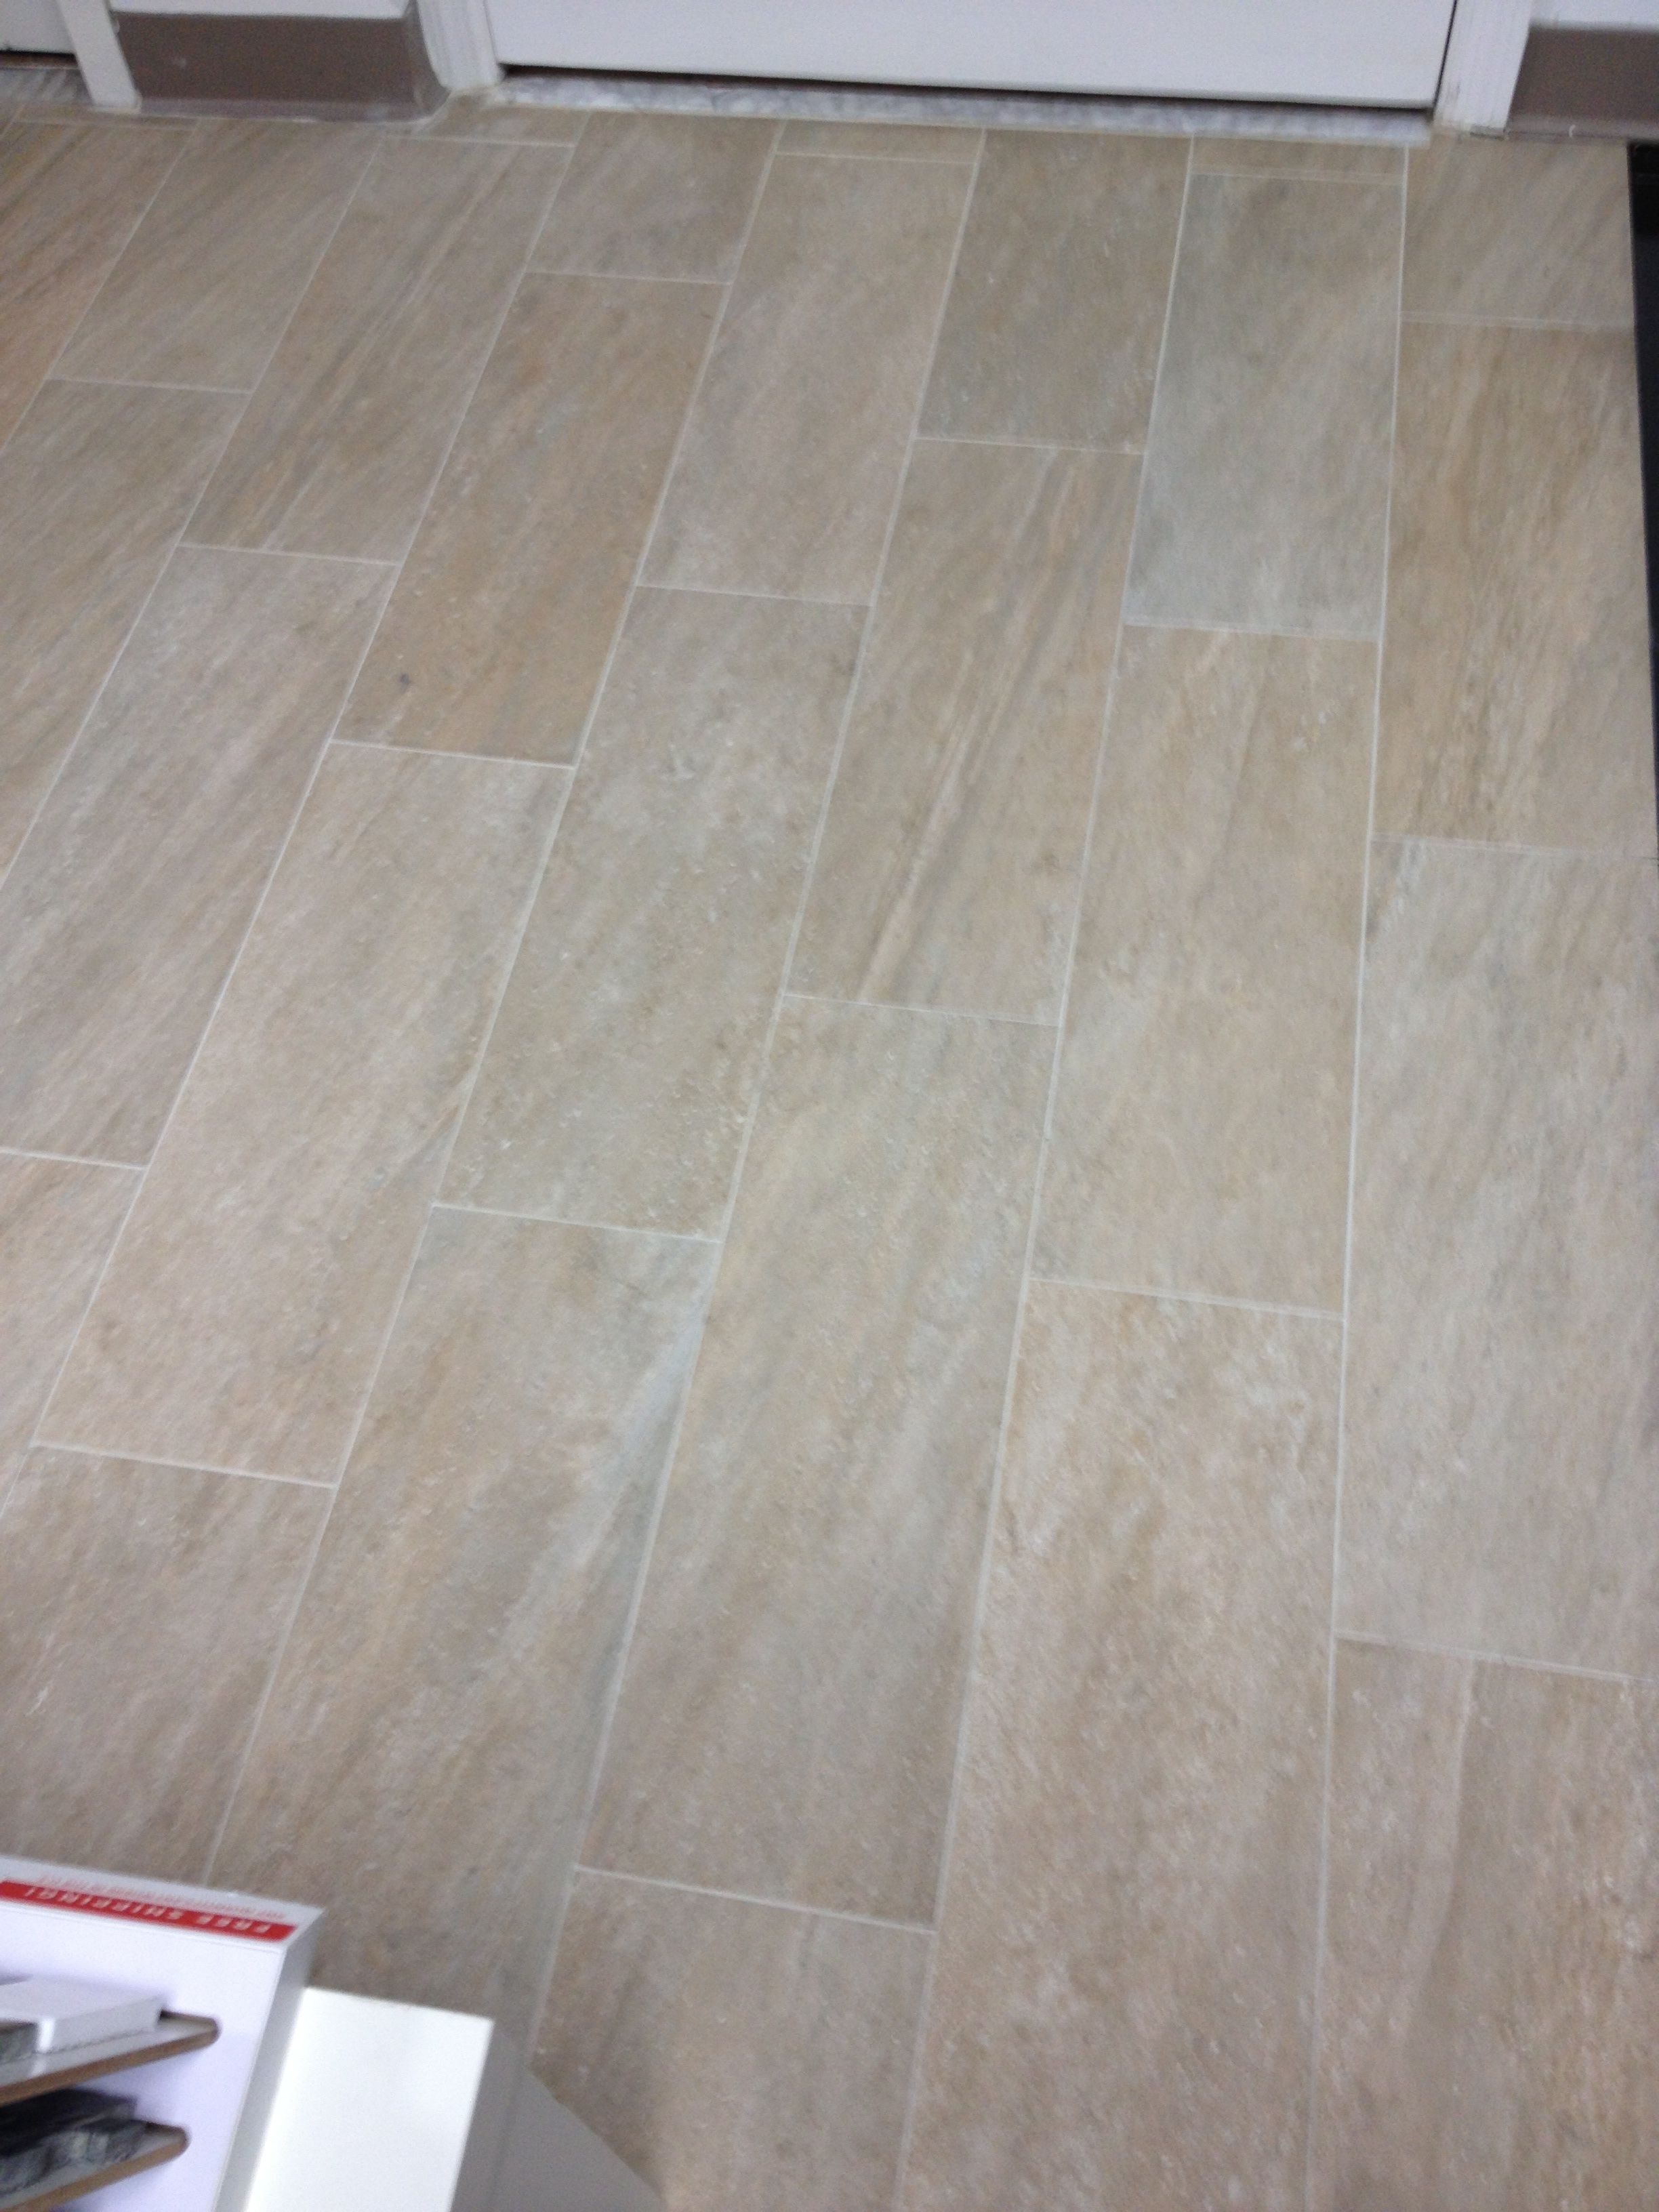 Purchased Lefka Floor Tile With Minimal Grout Lines Tiles Tile